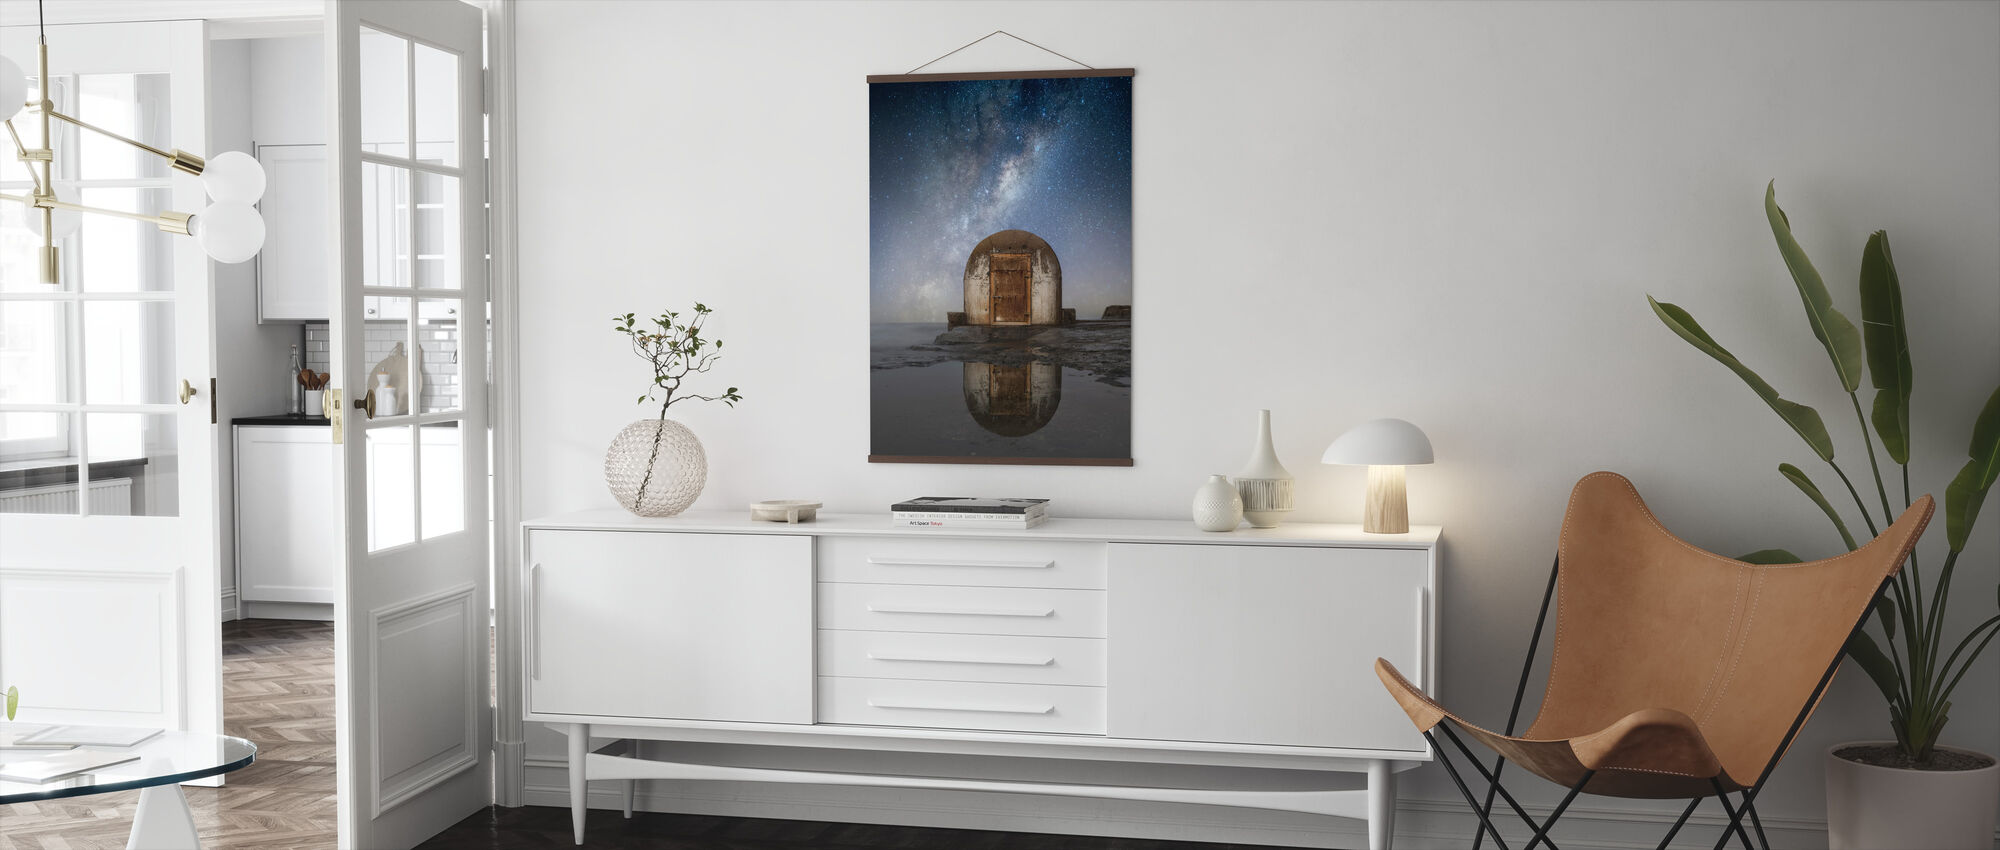 Lonely Hut - Poster - Living Room